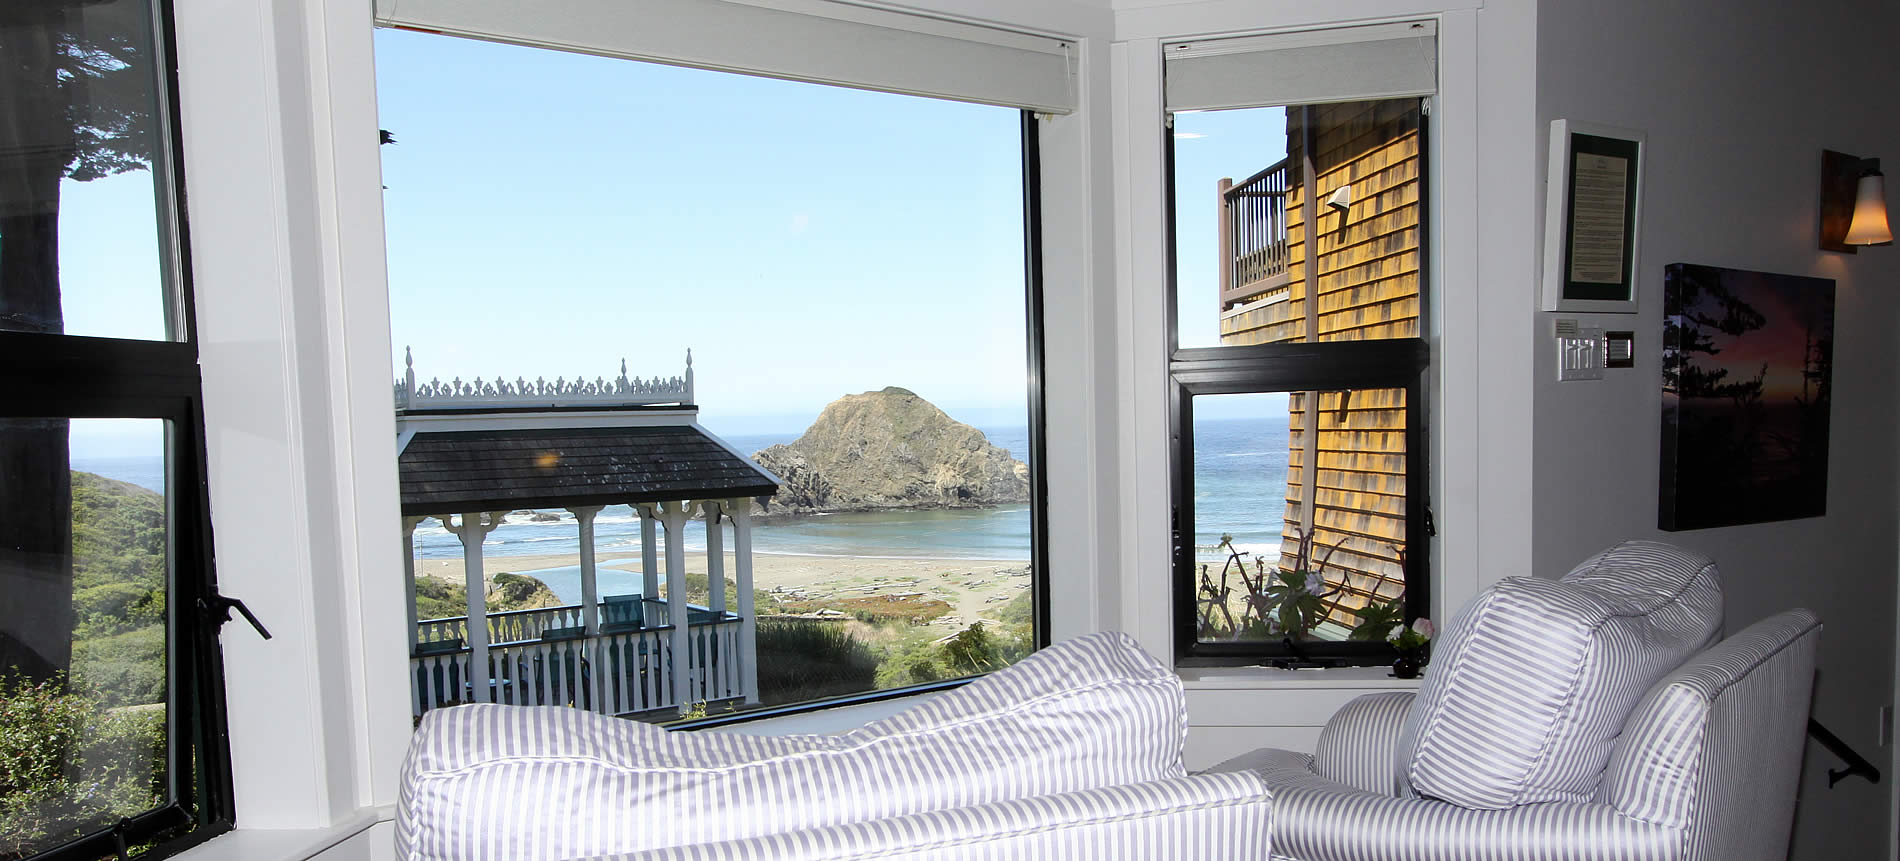 wavewatcher room at elk cove inn with stunning ocean views